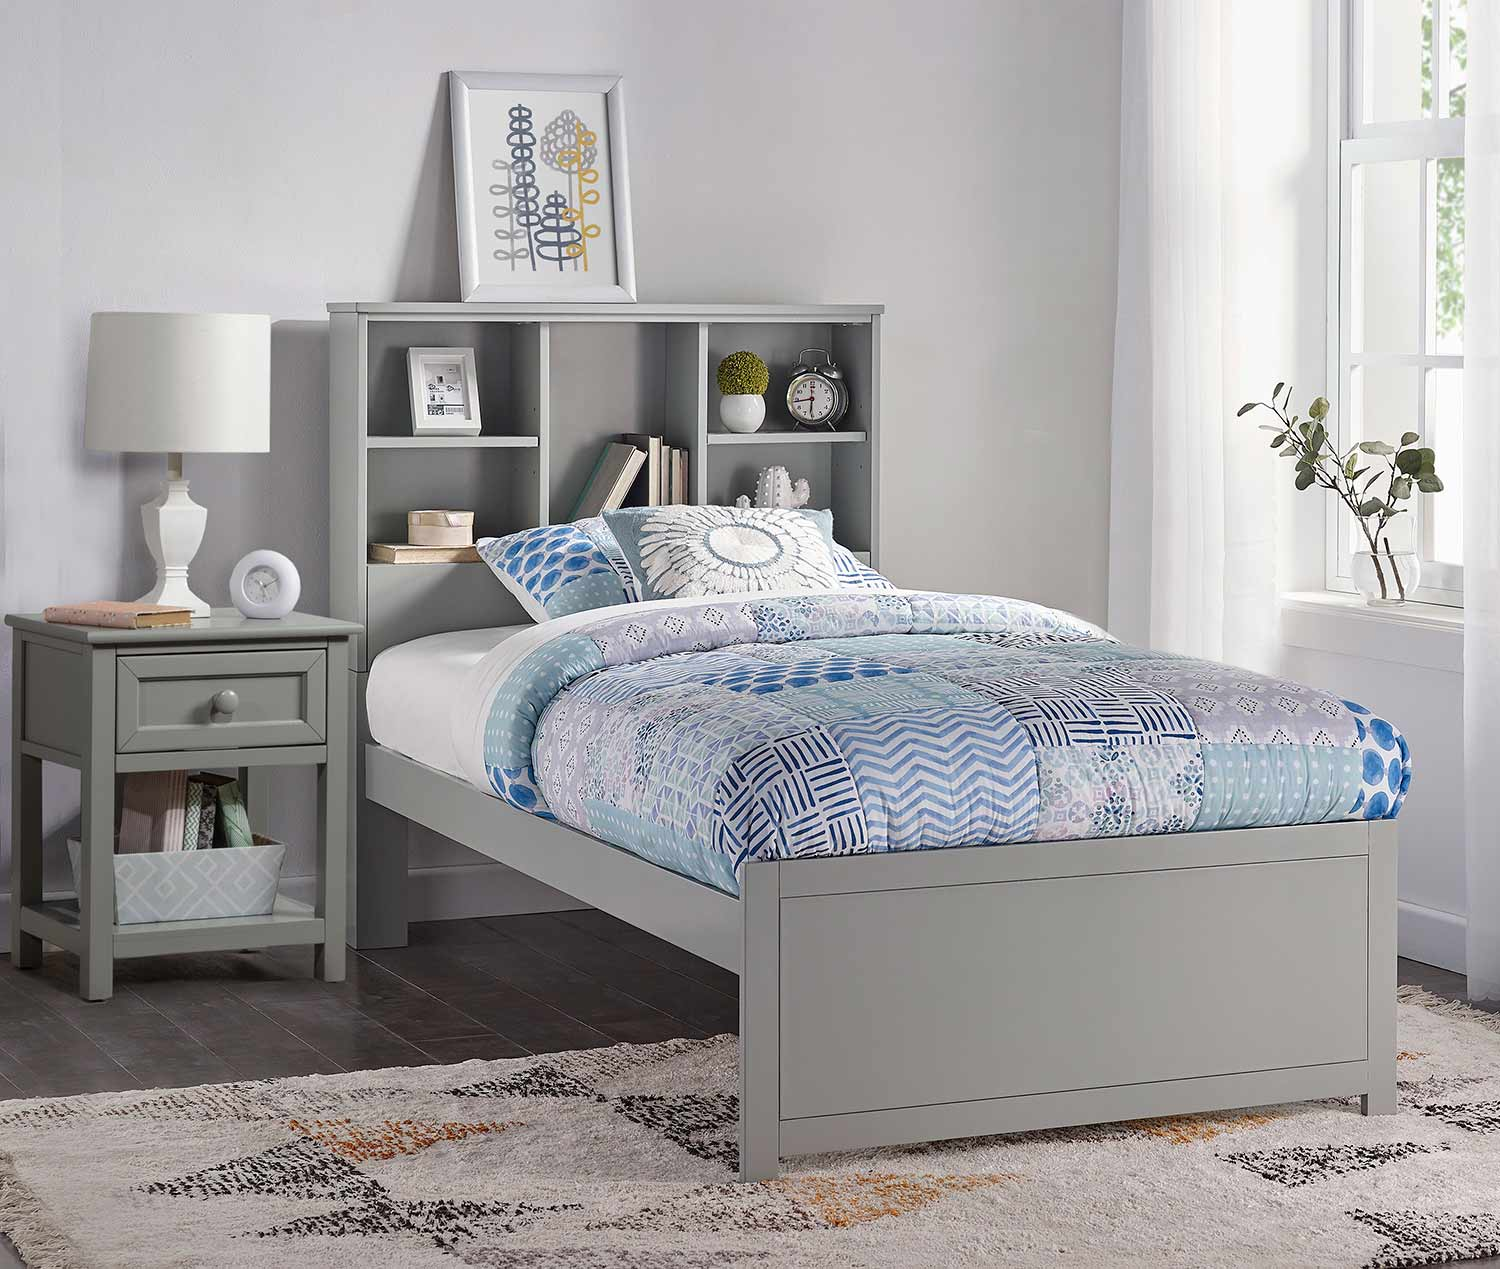 Hillsdale Caspian Twin Bookcase Bed with Nightstand - Gray